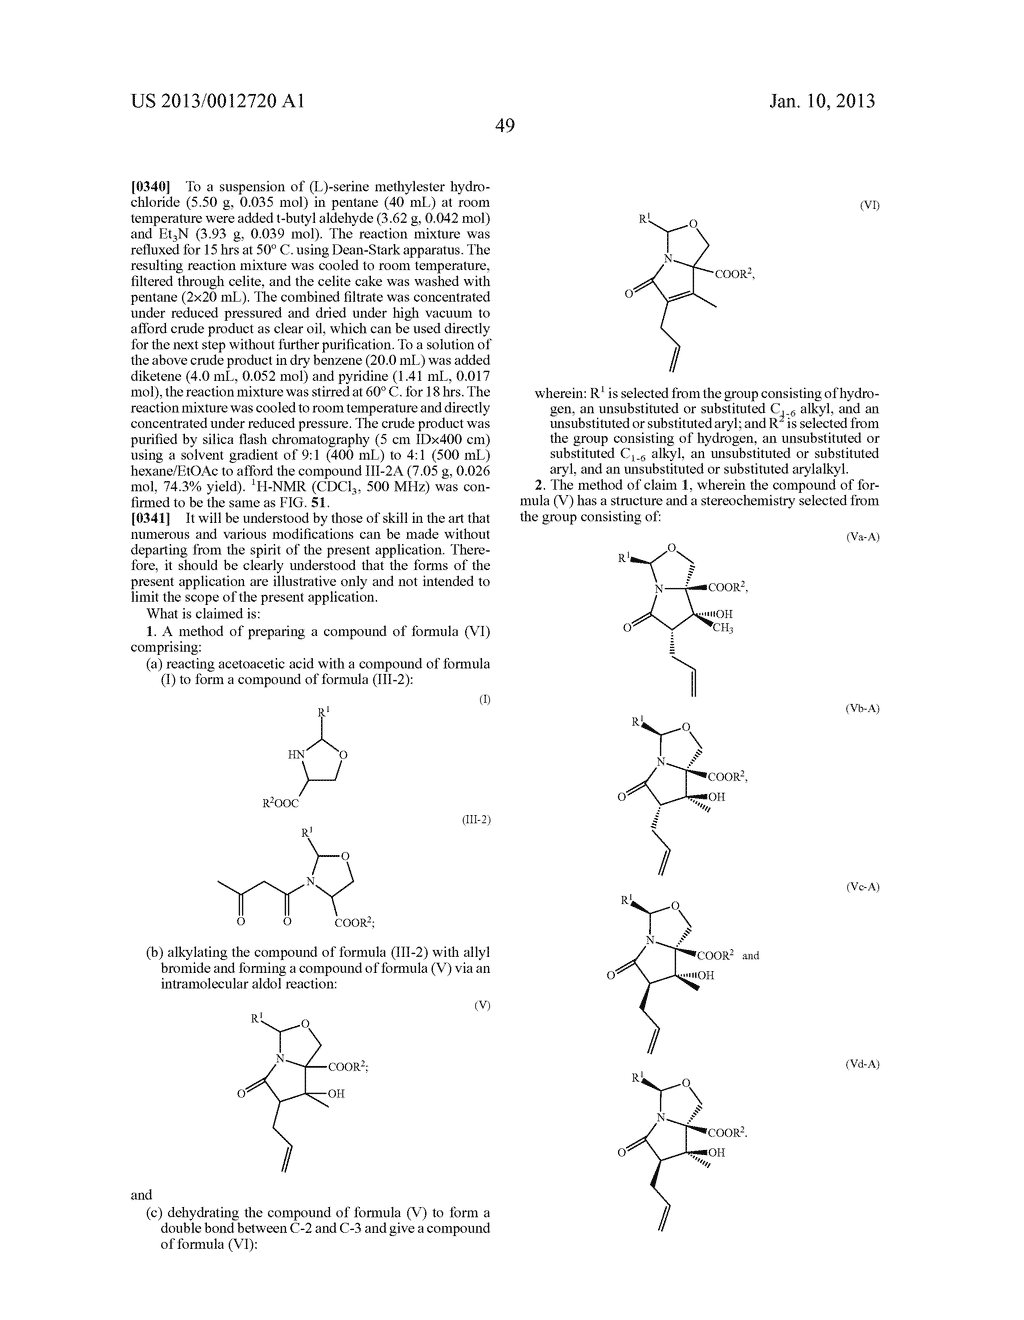 TOTAL SYNTHESIS OF SALINOSPORAMIDE A AND ANALOGS THEREOF - diagram, schematic, and image 111